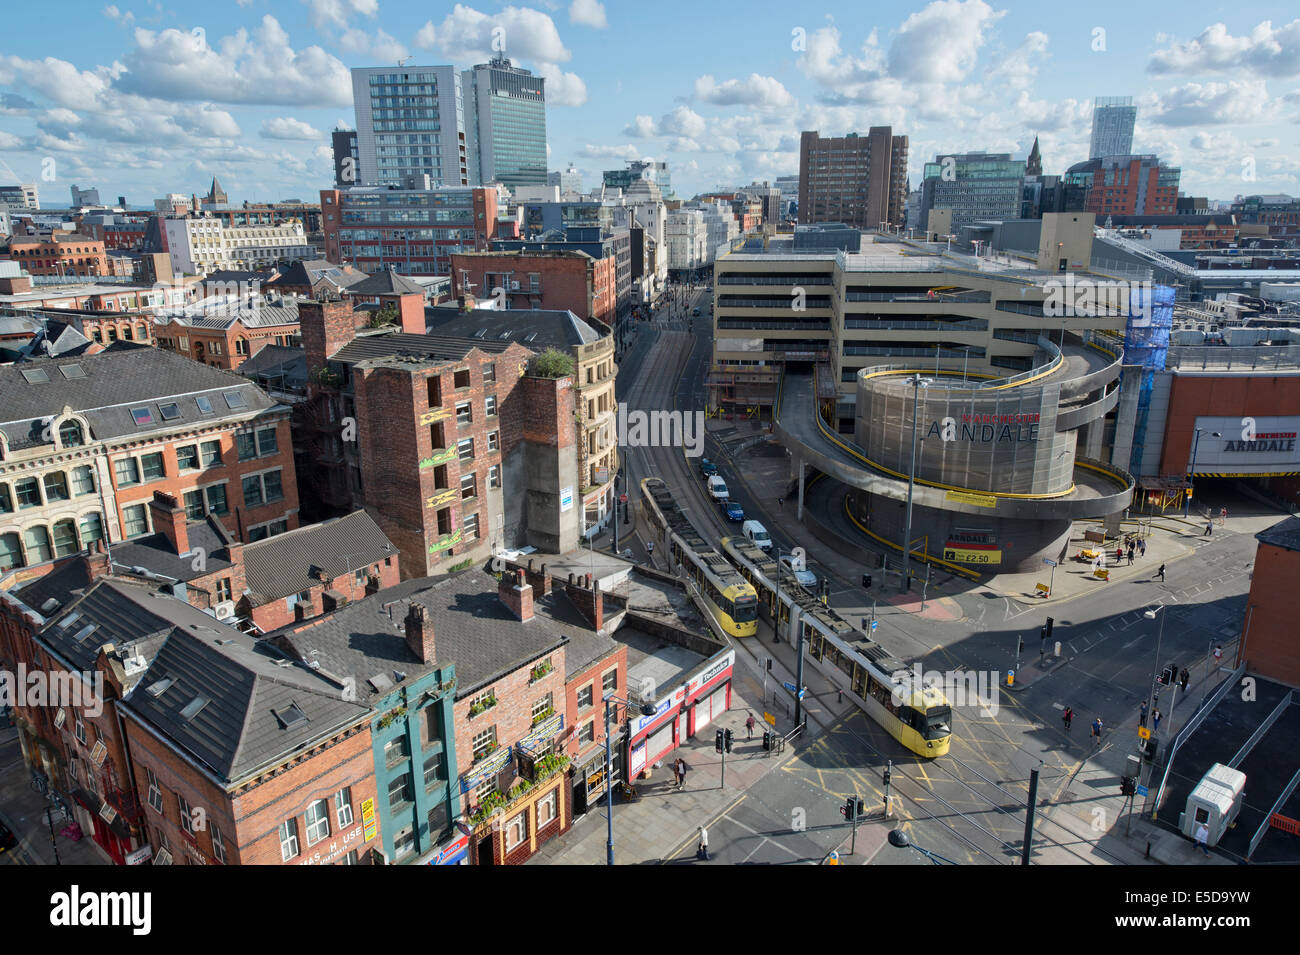 A view of Shudehill, High Street, Withy Grove, Northern Quarter, Arndale and the city centre skyline of Manchester. - Stock Image